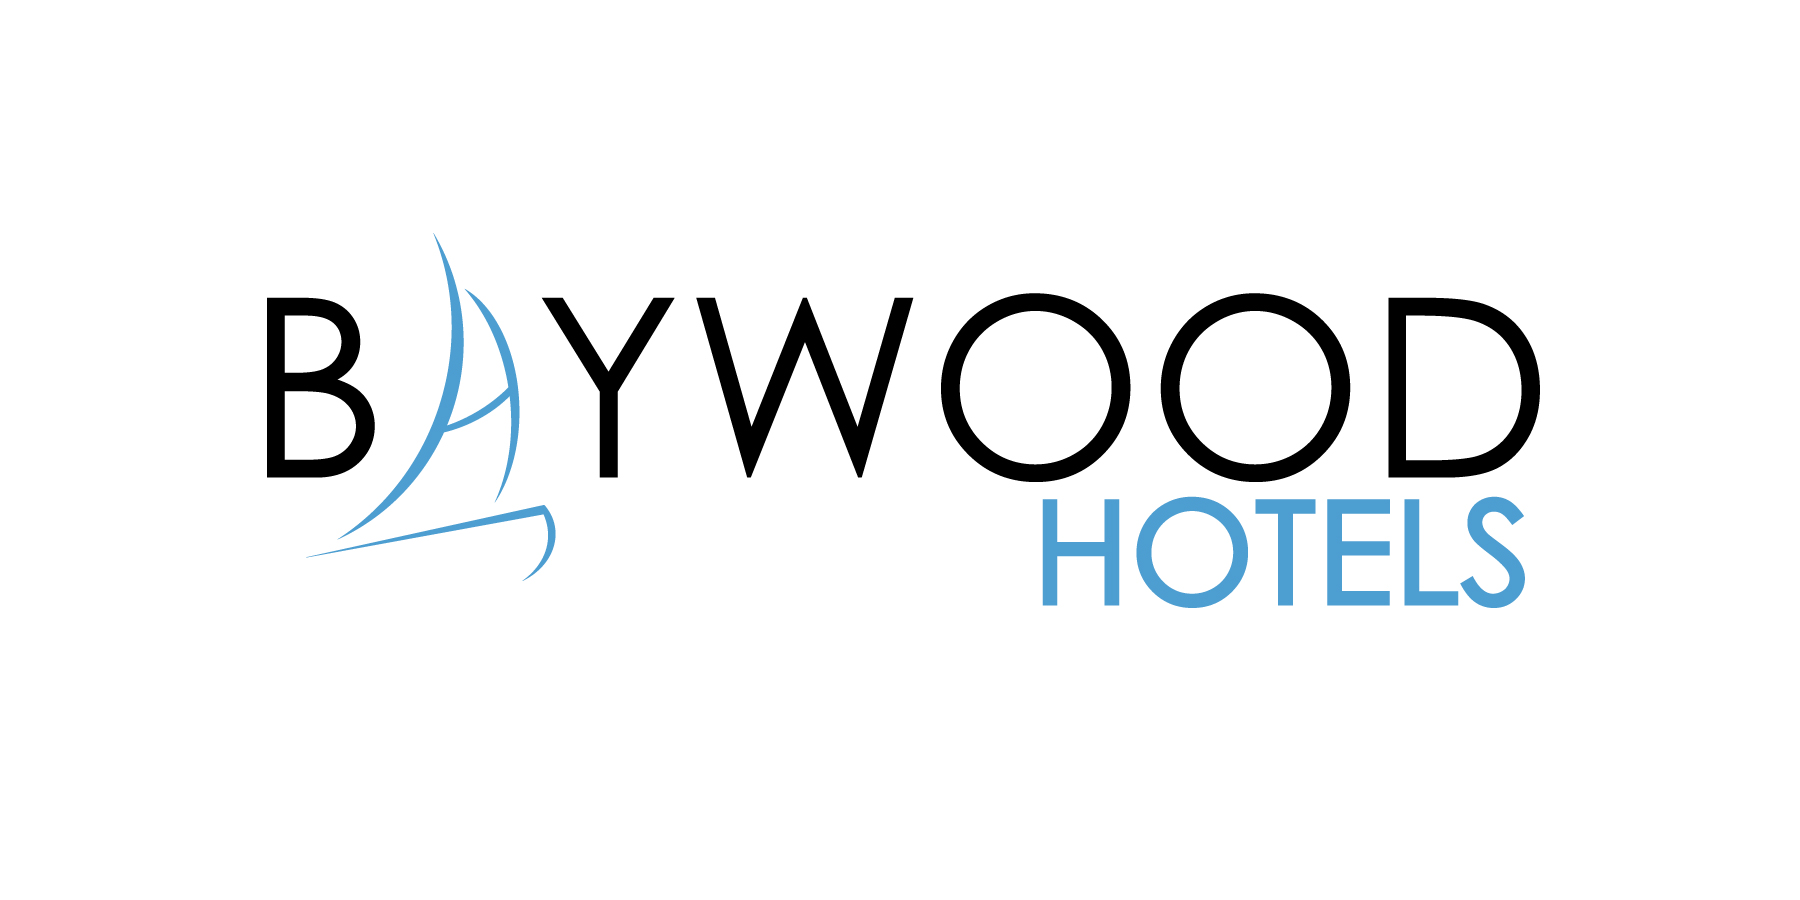 Baywood Hotels Raises Over $60,000 for Children's Miracle